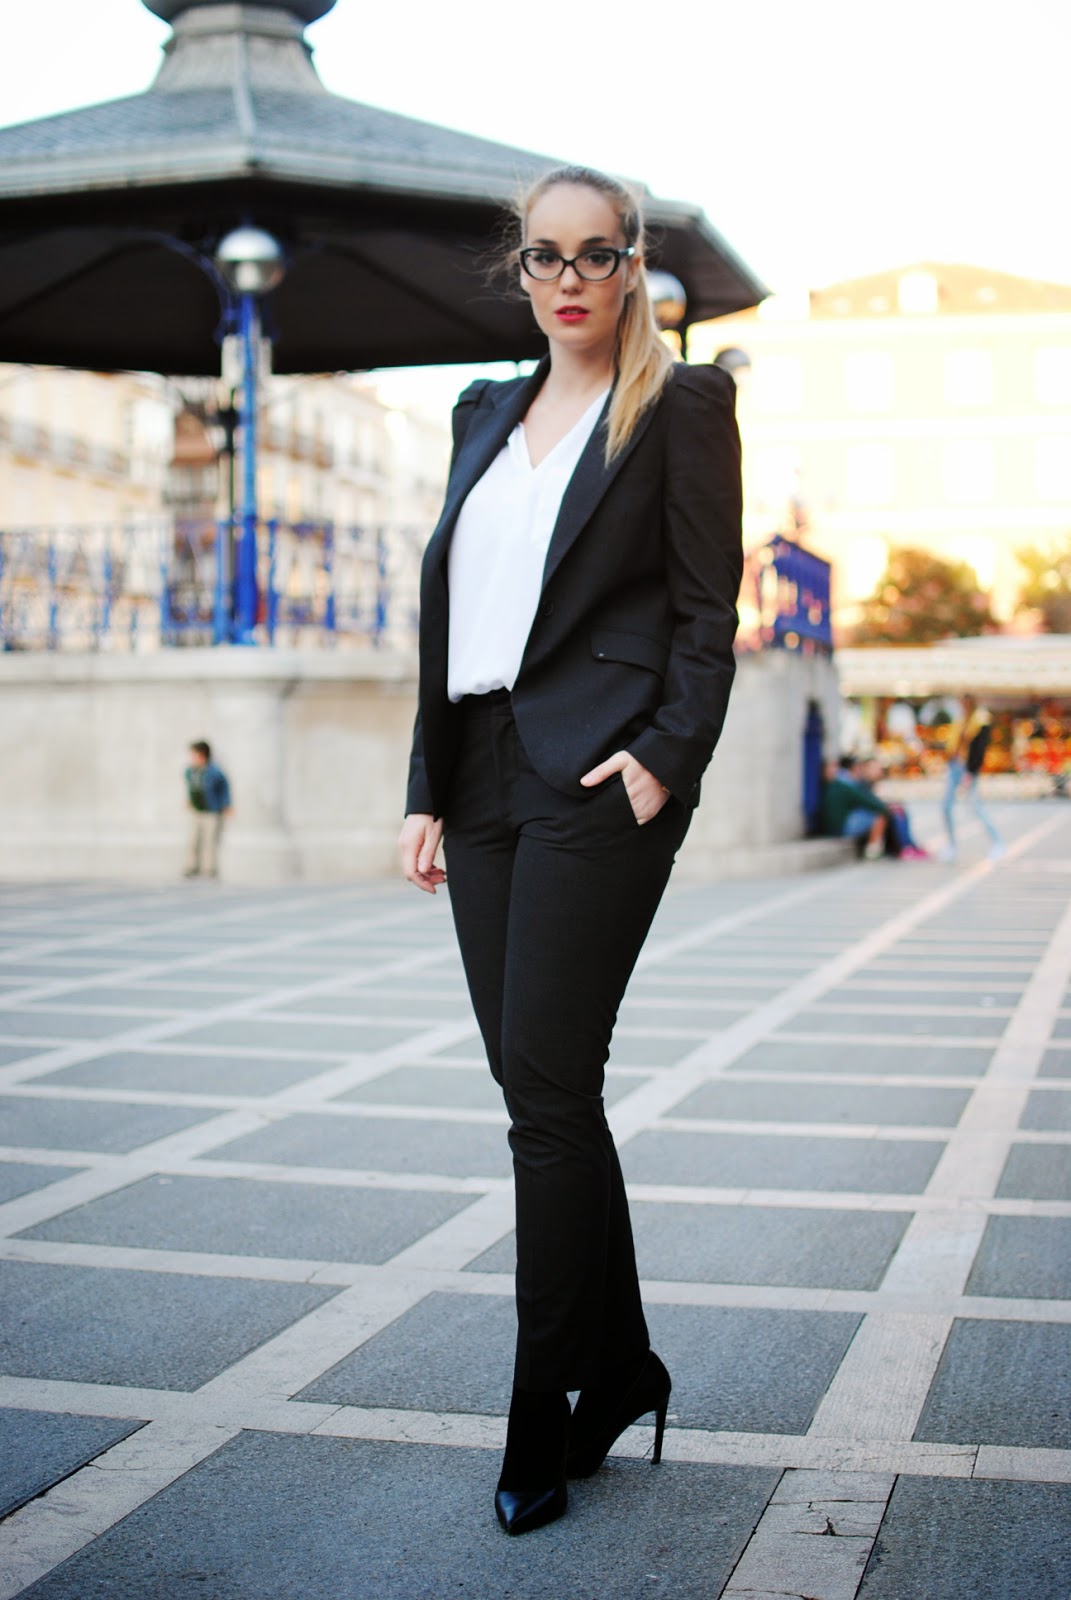 nery hdez, suits, trajes de chaqueta, bussines look, wear to work look,